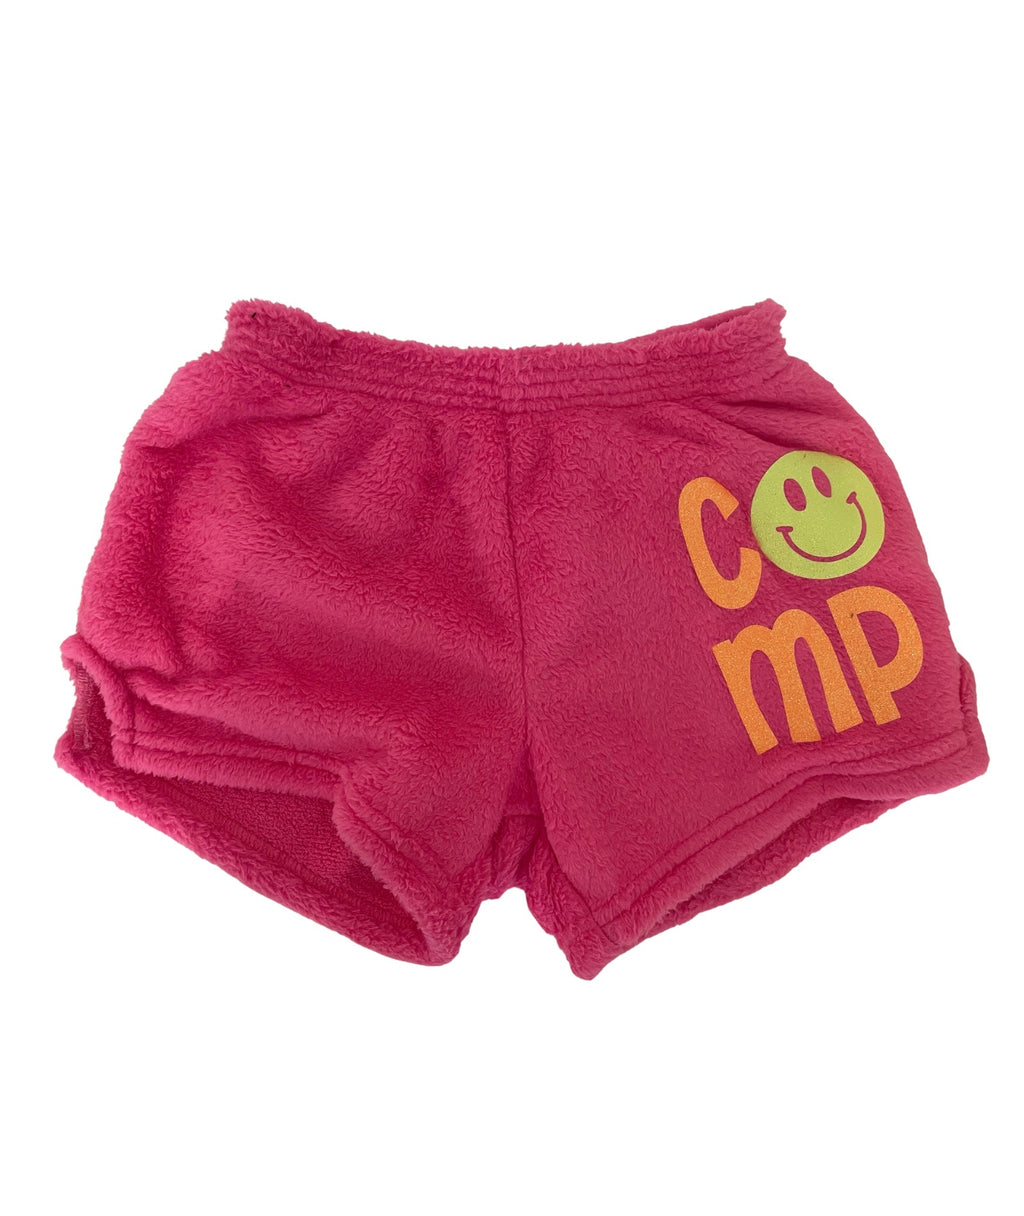 Made with Love and Kisses Girls Neon Pink Camp Smile Shorts